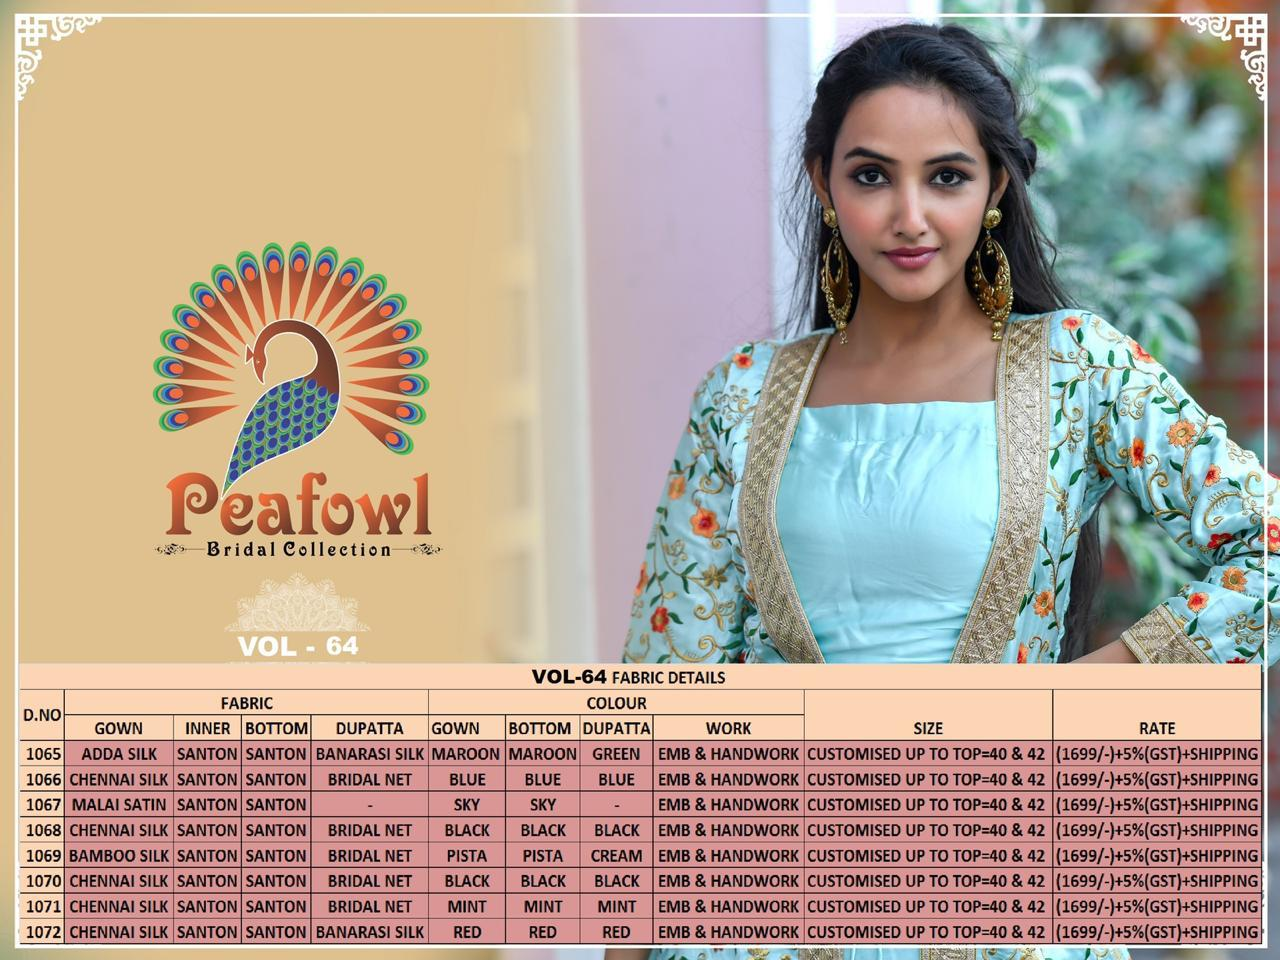 Peafowl Vol 64 Heavy Designer Chennai Silk Long Wedding Wear Suit Collection At Wholesale Rate